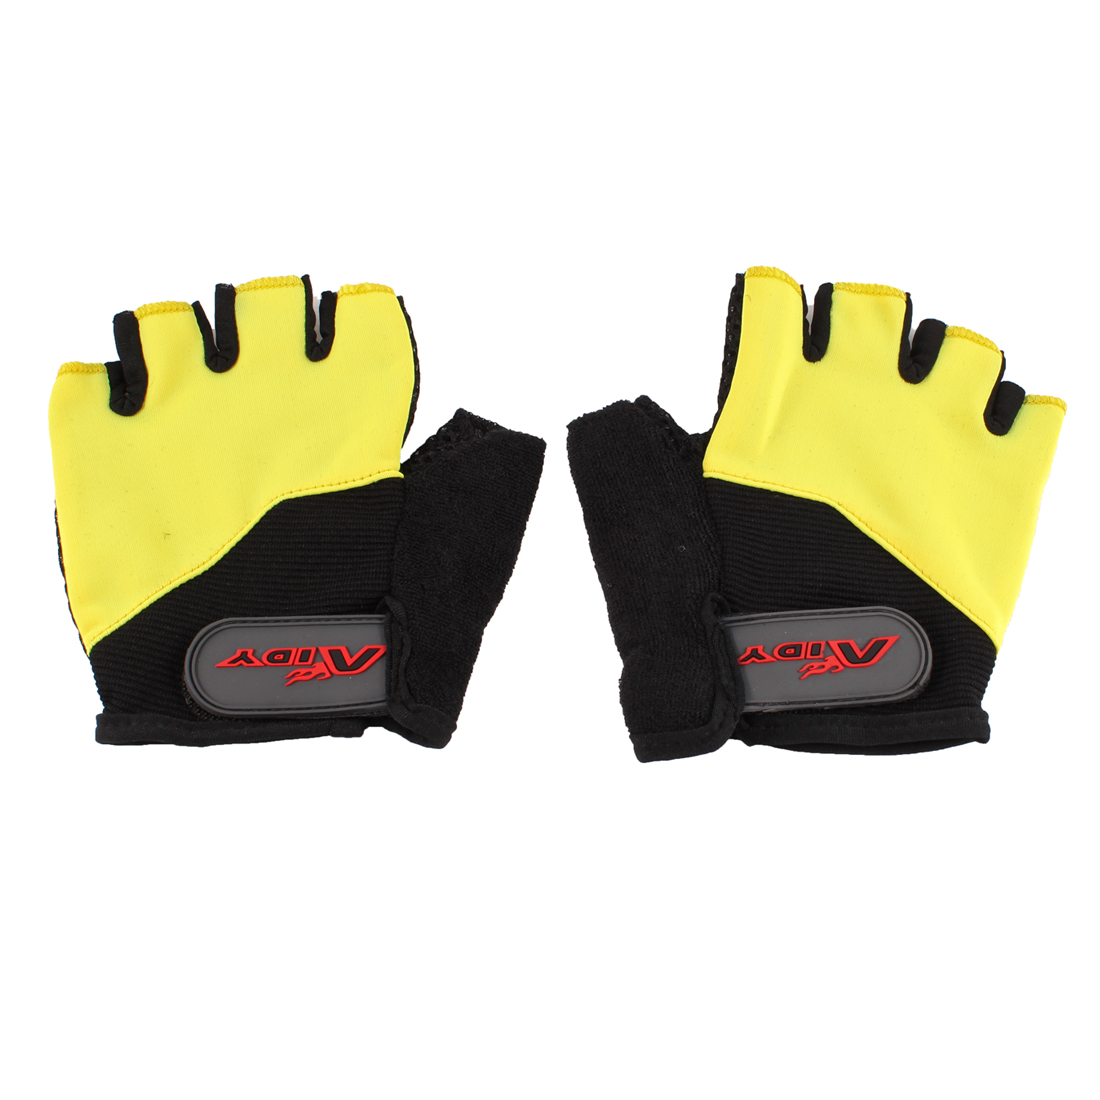 Pair Outdoors Yellow Black Fingerless Skidproof Racing Bicyle Gloves